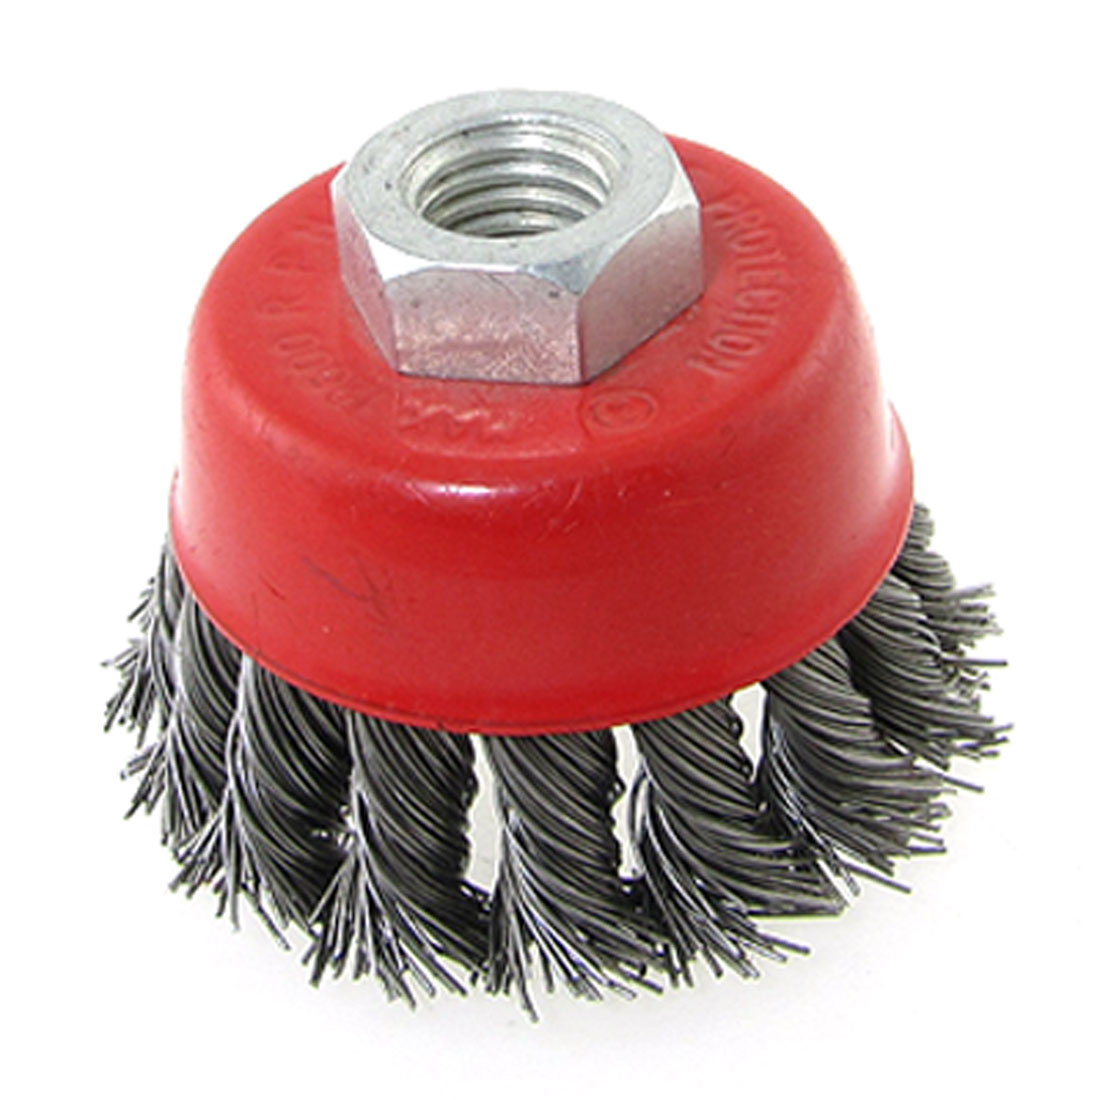 Red Twist Knot Wire Cup Thread Brush 15mm Inner Diameter